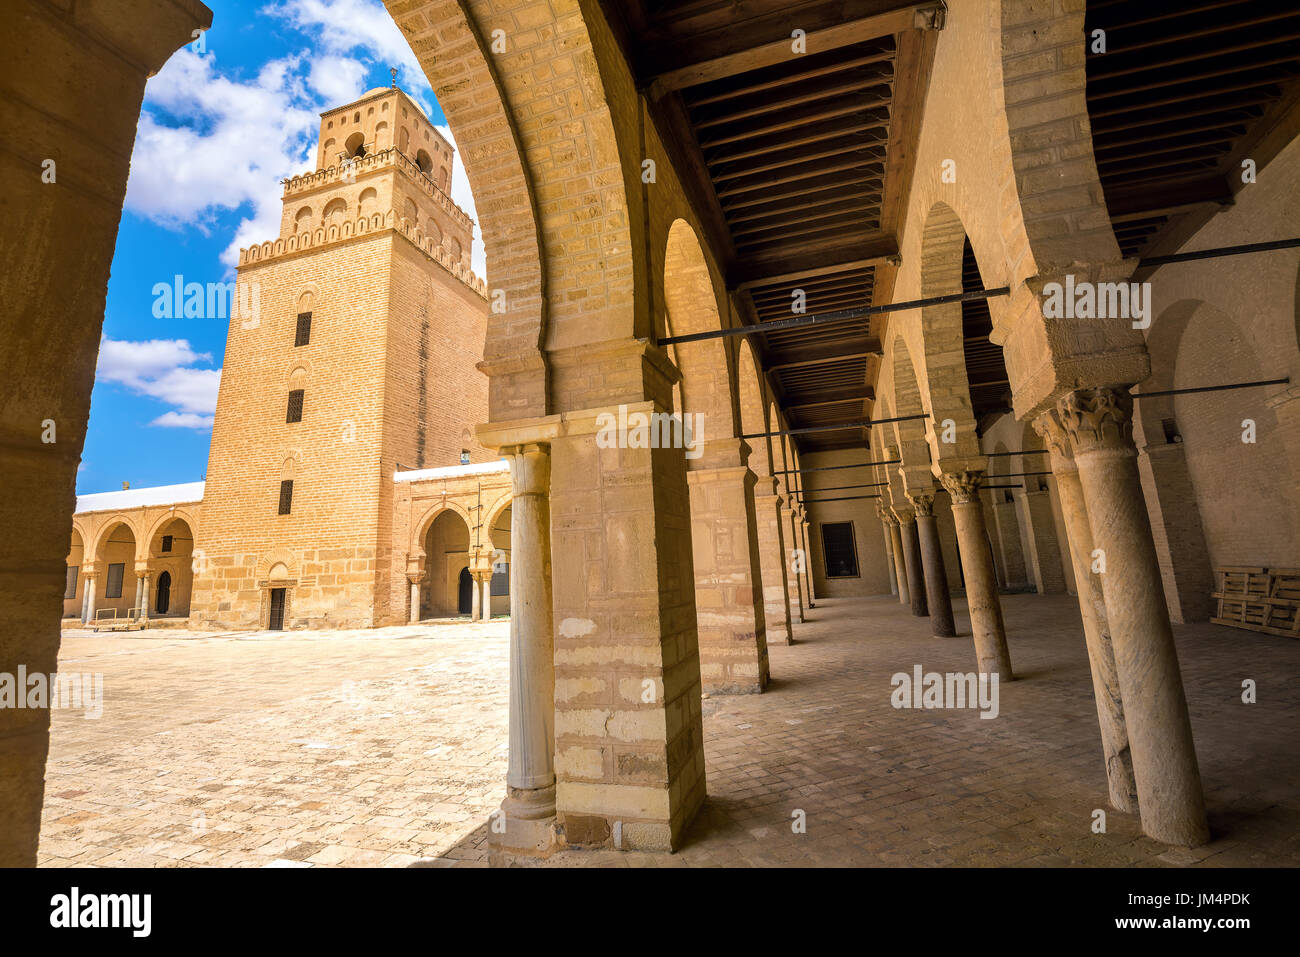 Beautiful view of Great Mosque through arcade of courtyard. Tunisia, North Africa - Stock Image